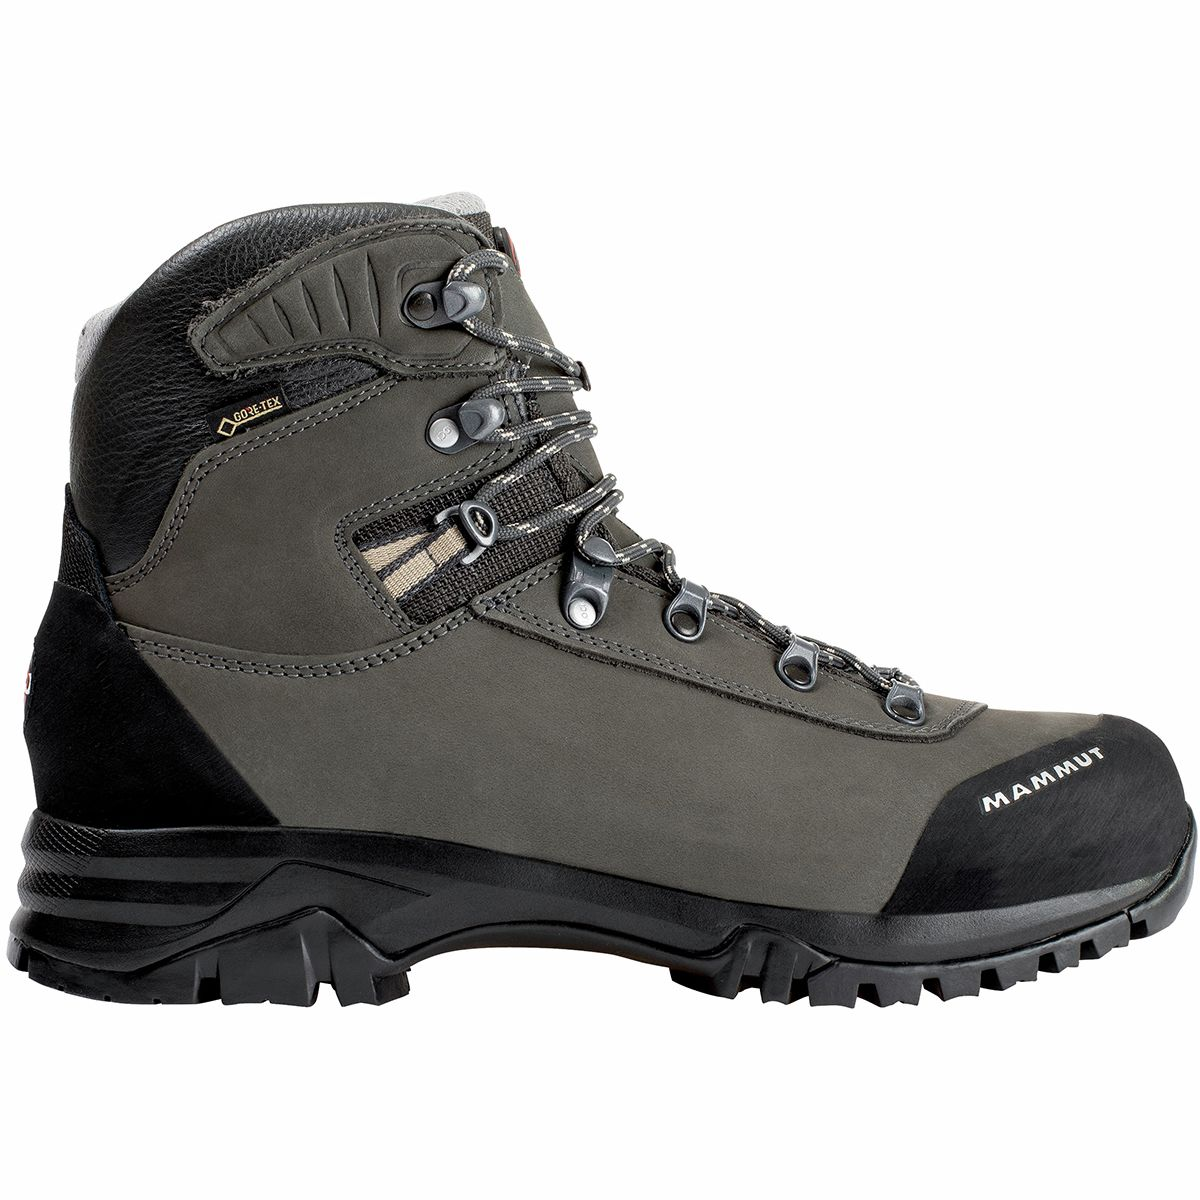 photo: Mammut Men's Trovat Advanced High GTX backpacking boot